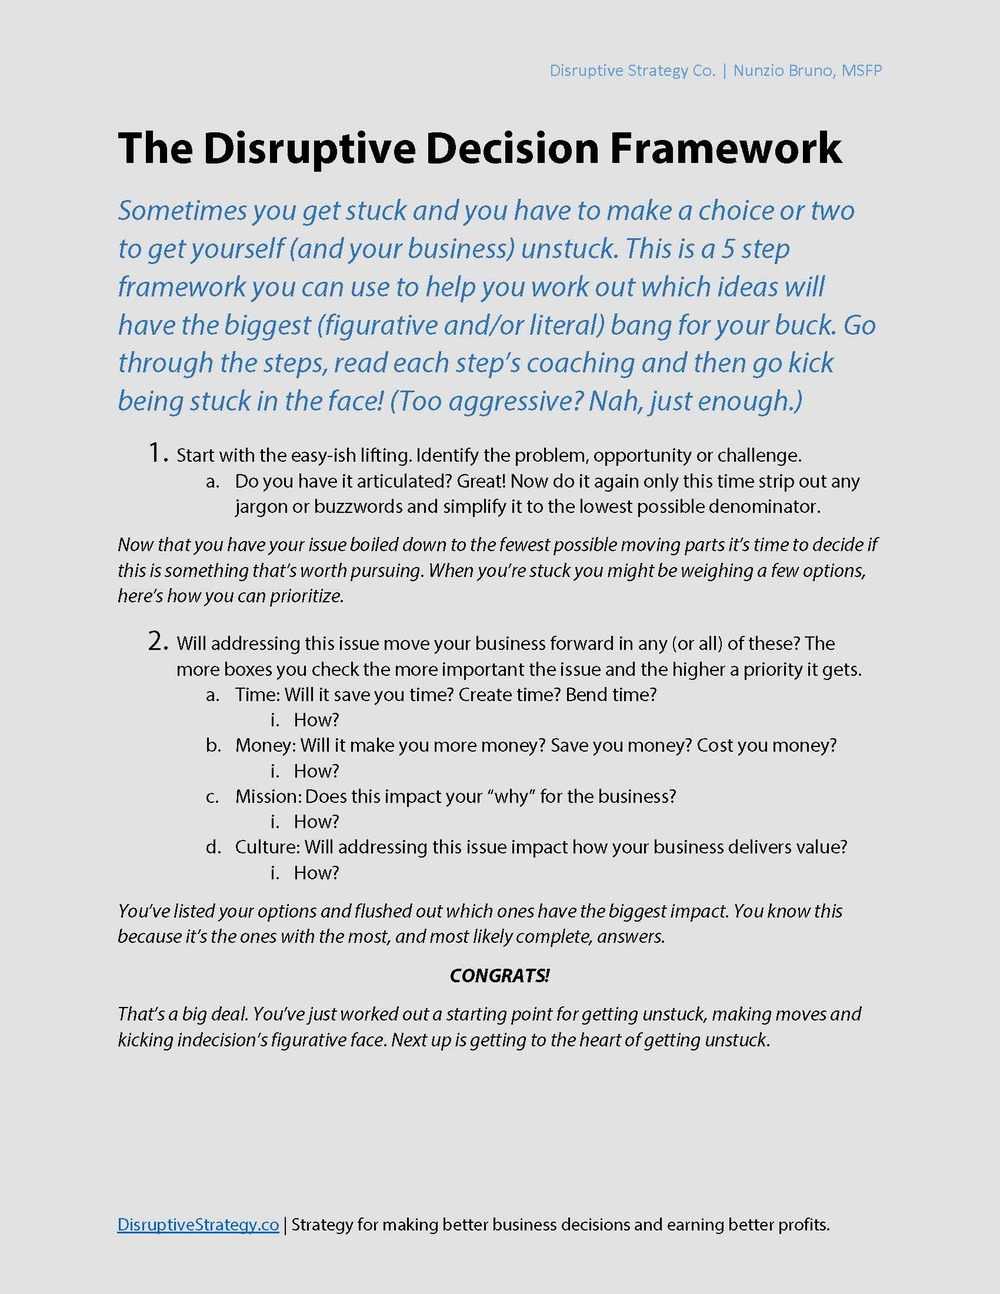 Page 1 of the Disruptive Decision Framework